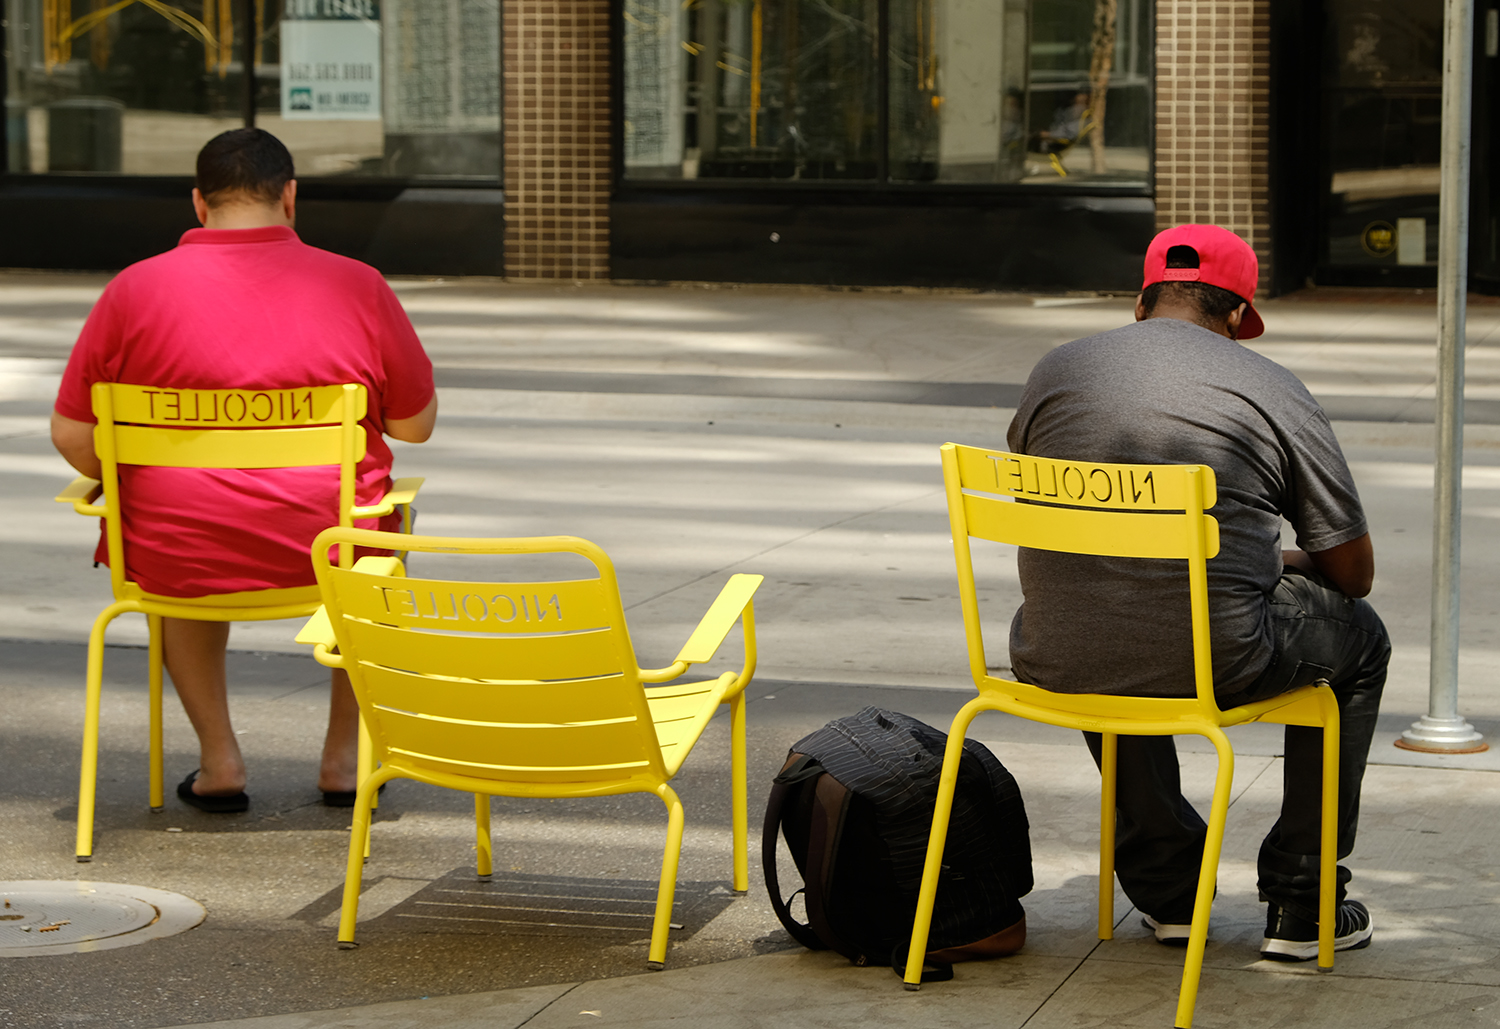 NM_MoveableChairs_7-6-18_2370.jpg